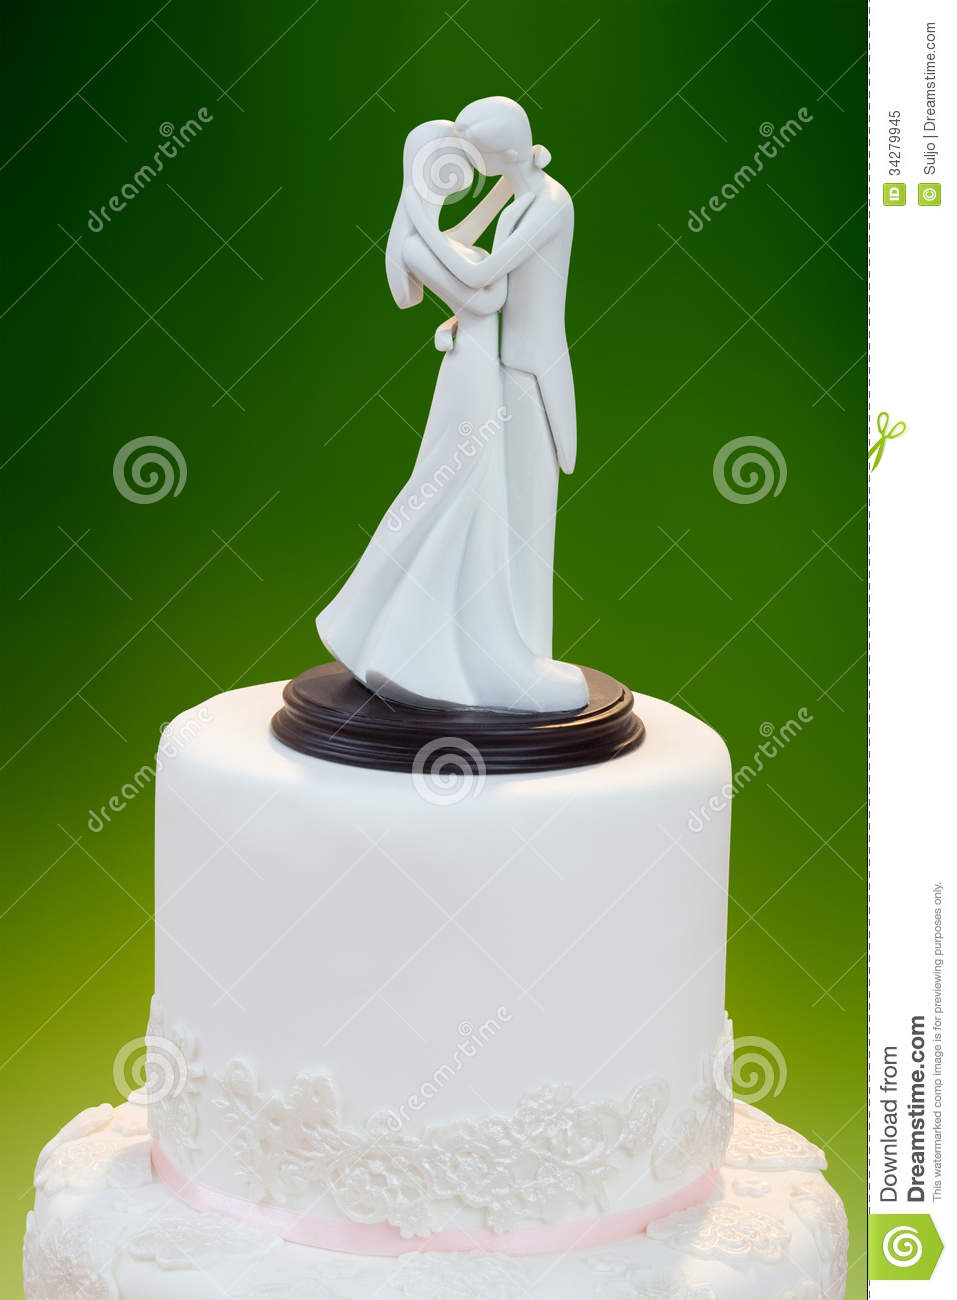 Wedding Decoration On The Cake Royalty Free Stock Photo ...